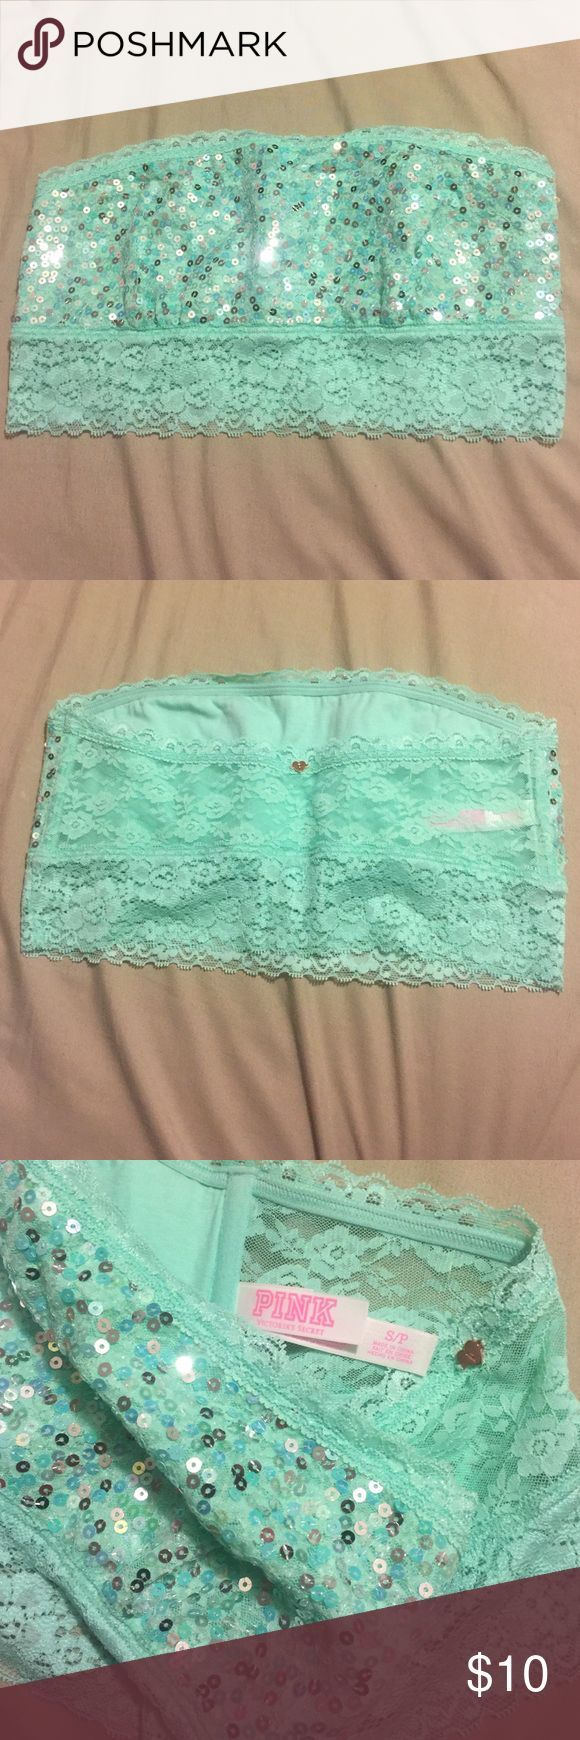 Victoria's SECRET PINK Mint green Sequin Bandeau BRAND NEW NWOT VS PINK All over Sequin front Bandeau size SMALL. Perfectly paired with crochet tank Victoria's Secret Intimates & Sleepwear Bandeaus - costume lingerie, buy lingerie, plus size intimates *sponsored https://www.pinterest.com/lingerie_yes/ https://www.pinterest.com/explore/intimates/ https://www.pinterest.com/lingerie_yes/teen-lingerie/ http://www.zaful.com/lingerie-e_15/